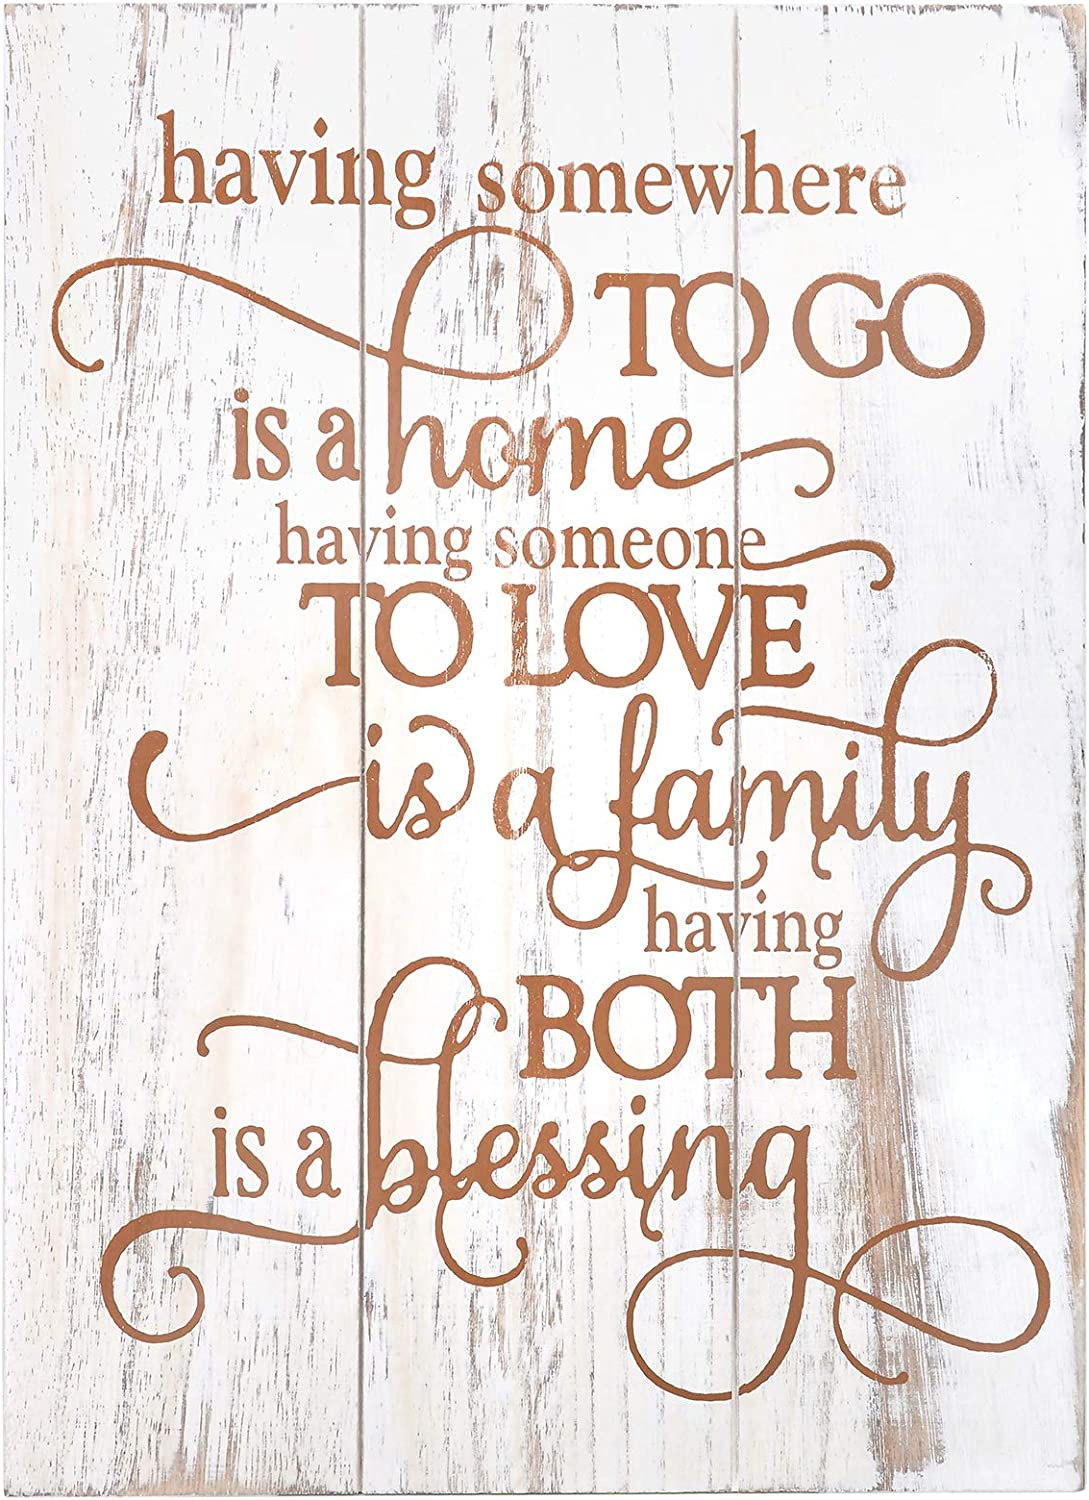 Soyo Hanging Wall Sign Rustic Wooden Wall Sign (Having Somewhere to Go is A Home Someone to Love is Family Both is A Blessing) Wood Wall Decoration for Home Decor